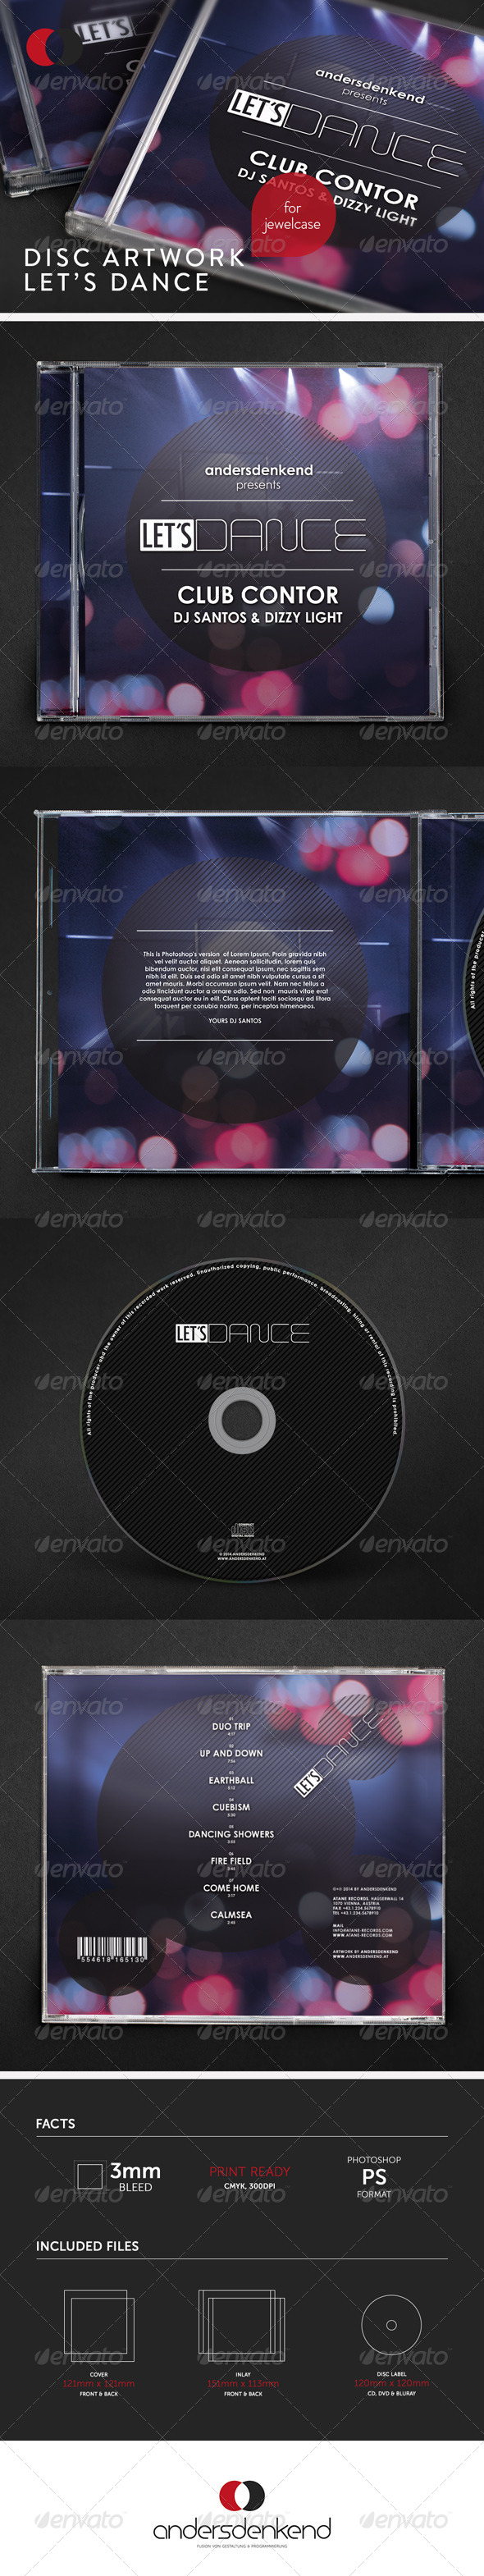 GraphicRiver Disc Artwork Let's Dance 6066672